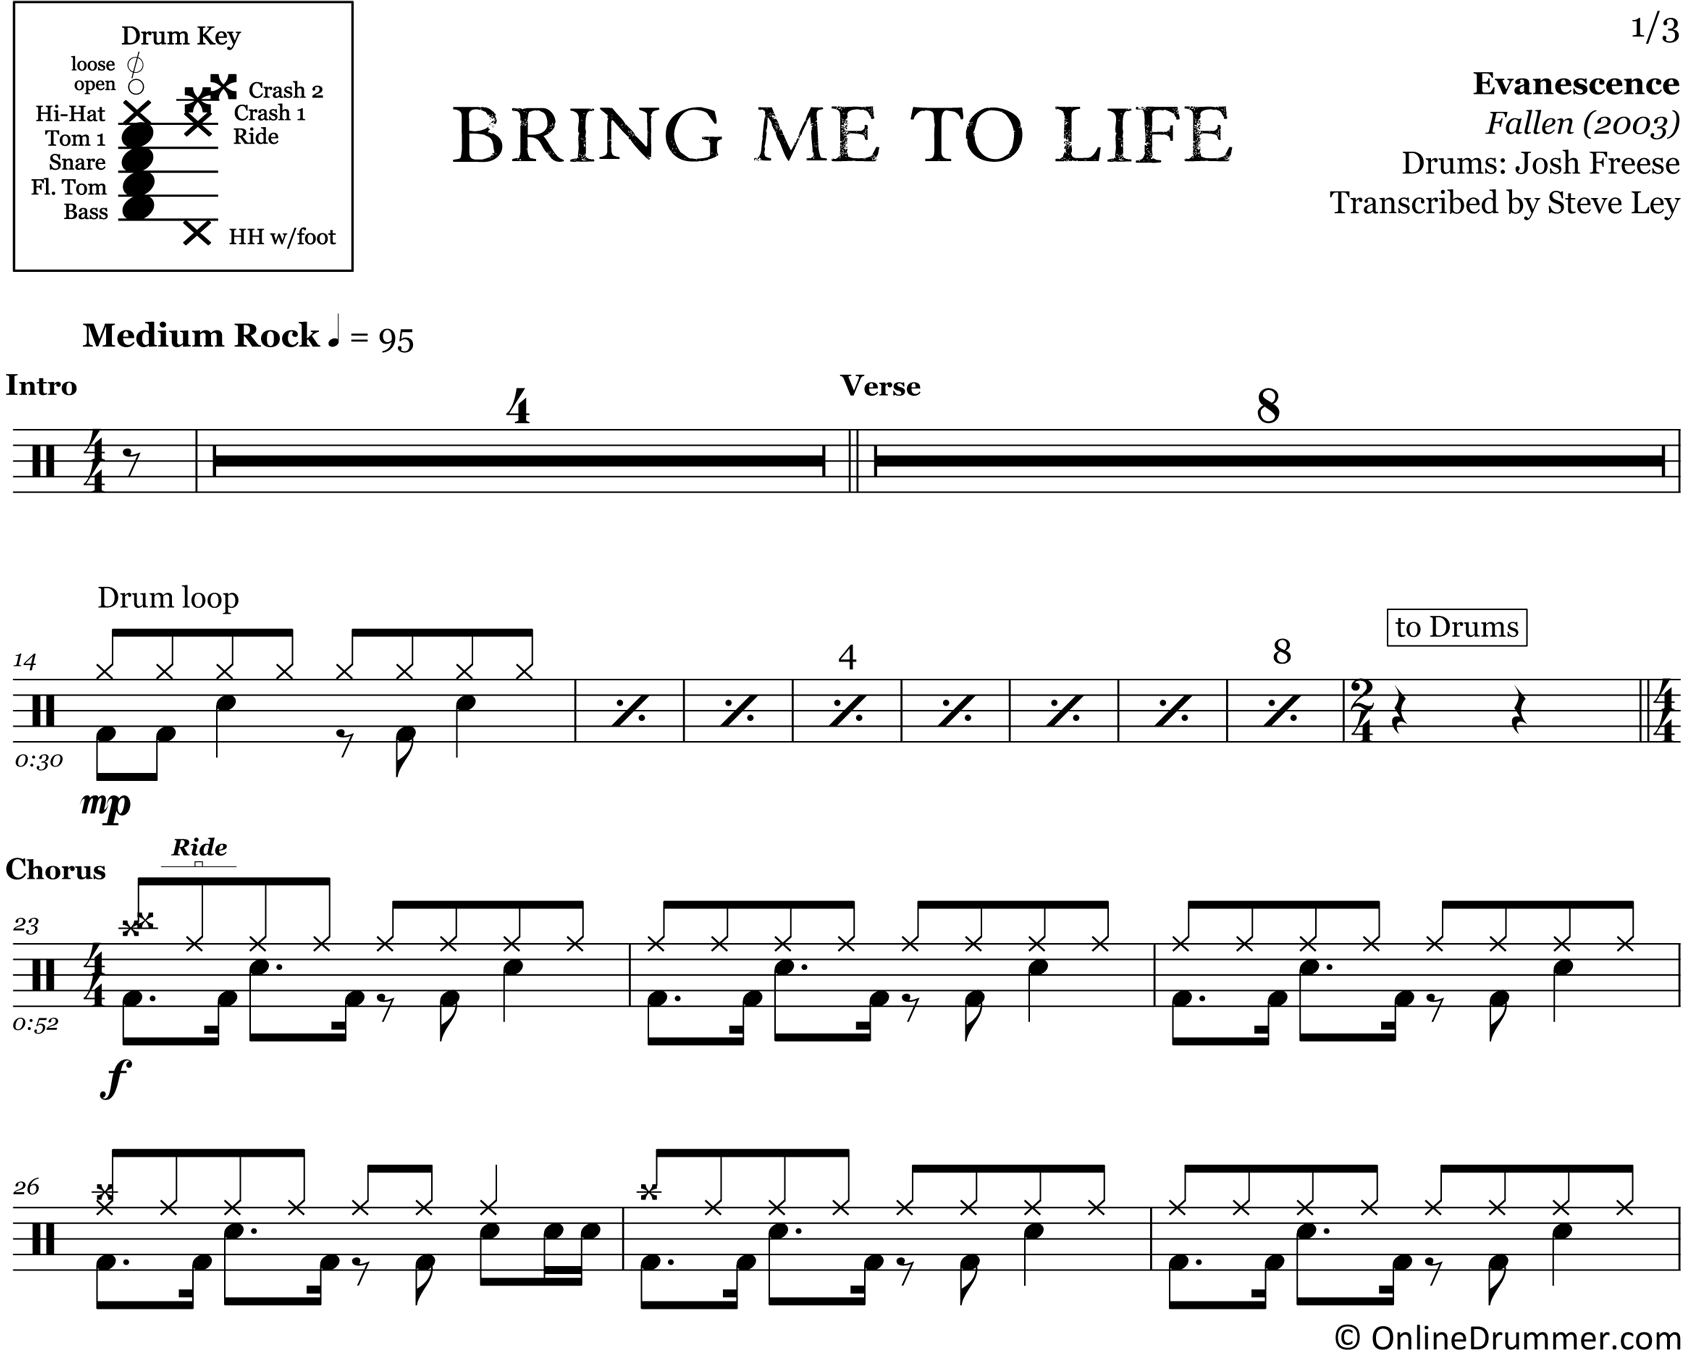 Bring Me To Life - Evanescence - Drum Sheet Music